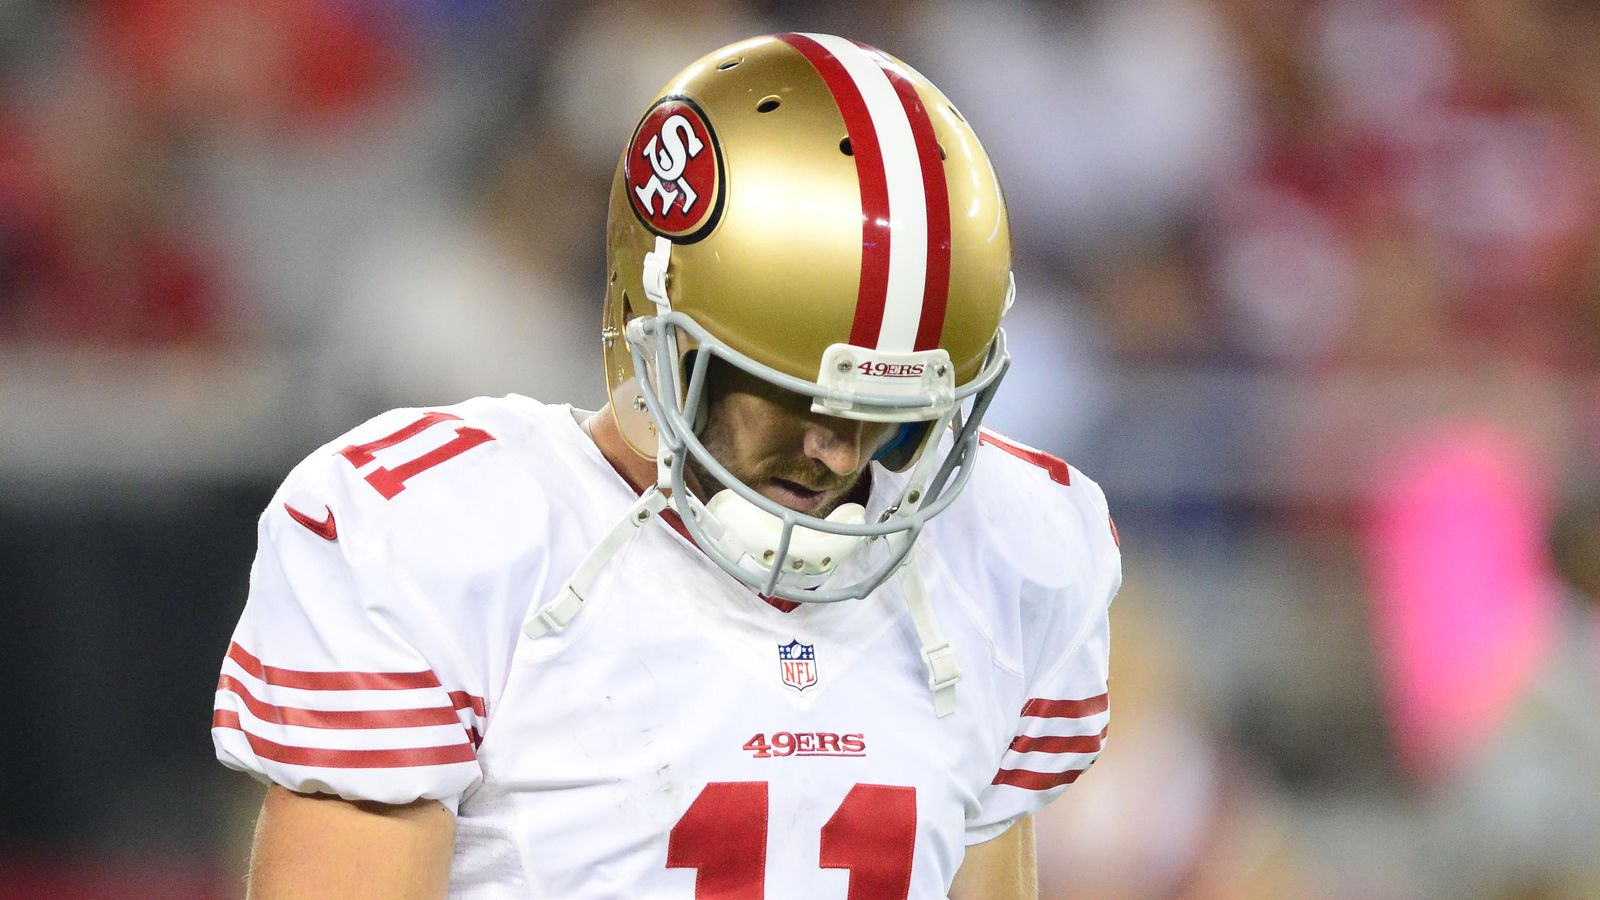 Alex Smith Injury 49ers QB Out Colin Kaepernick Will